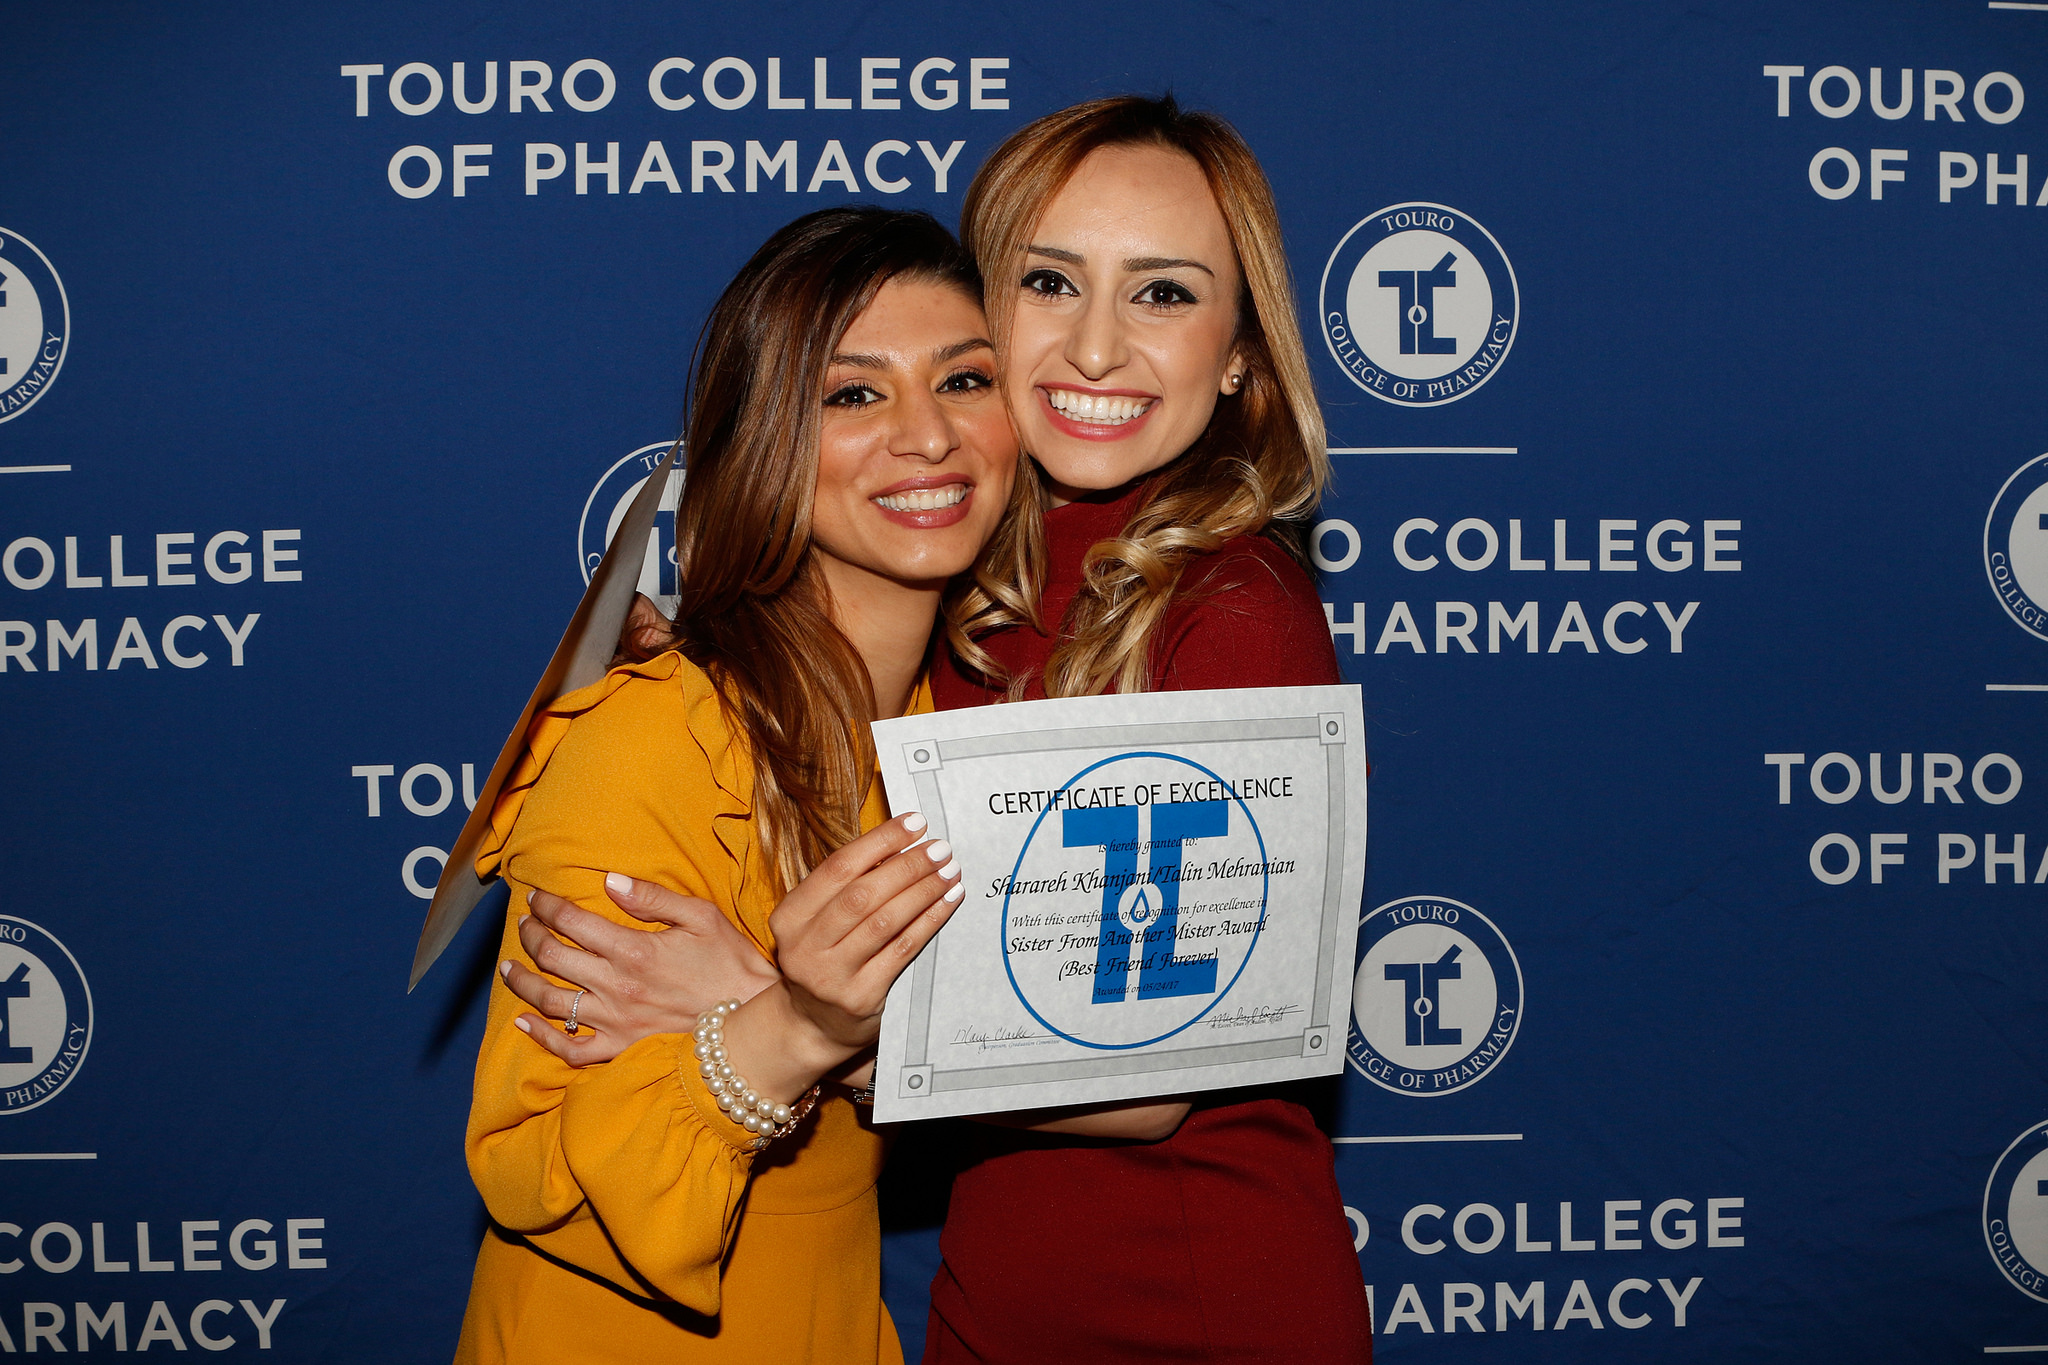 Touro College of Pharmacy held their annual banquet celebrating the class of 2017